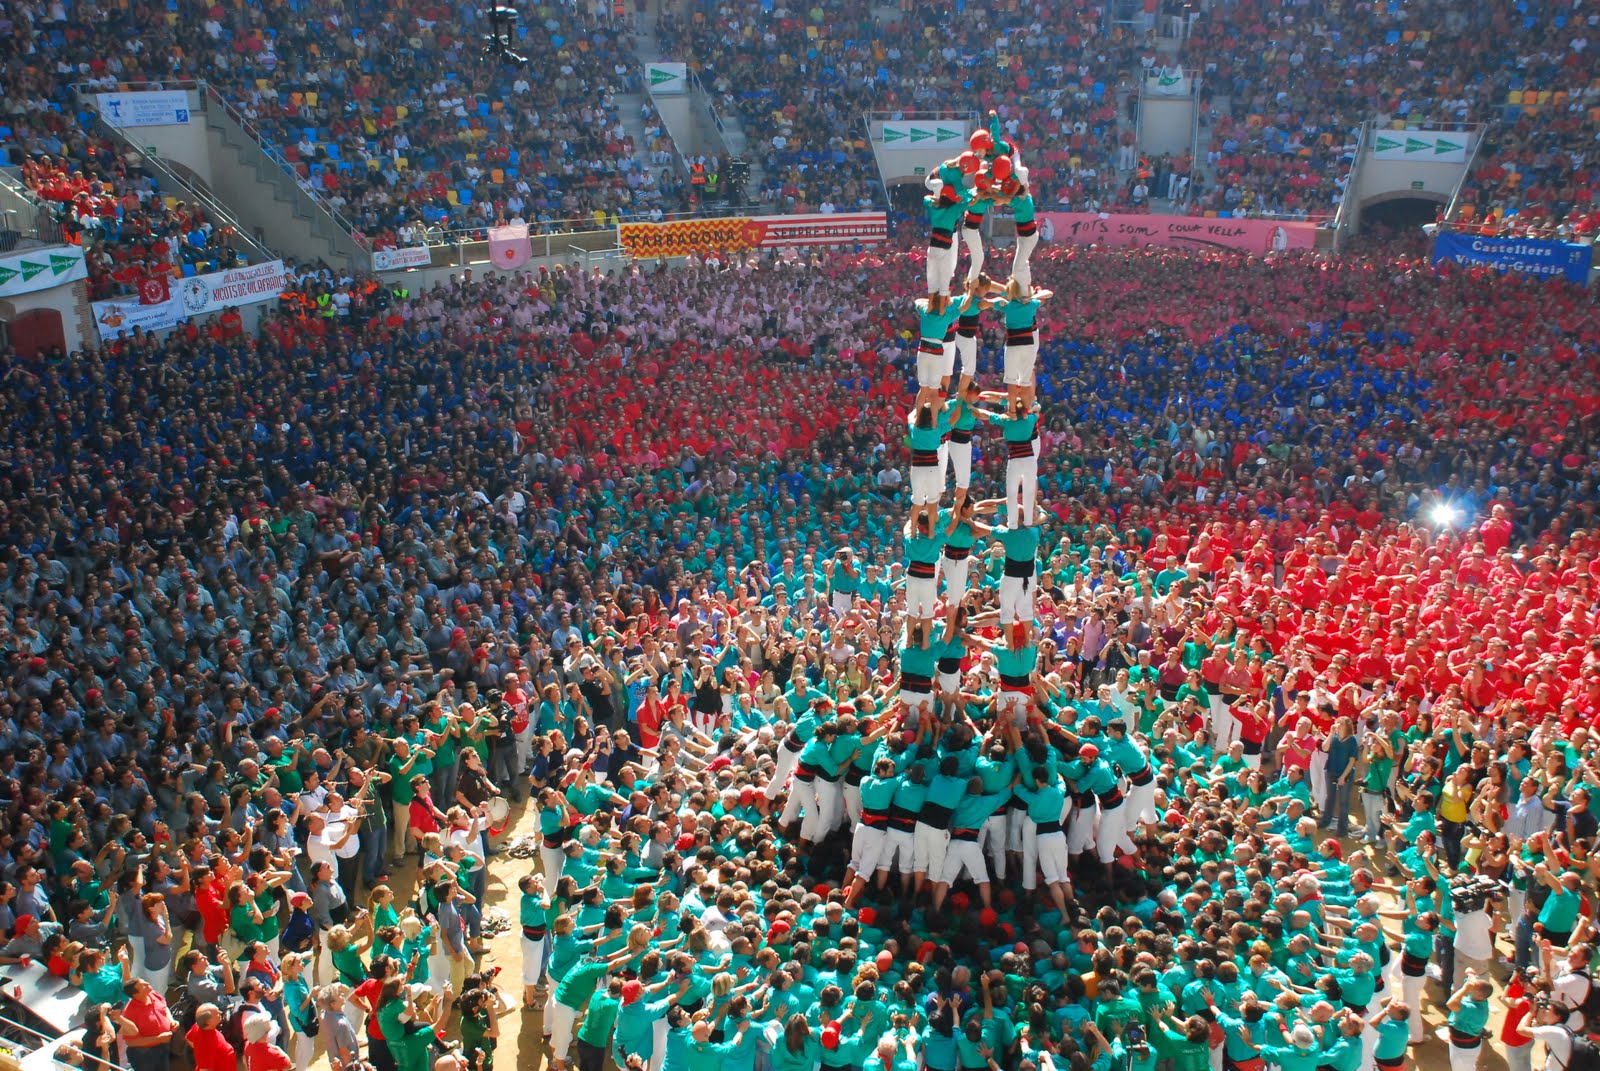 Festivals and typical traditions of Catalonia that will surprise you